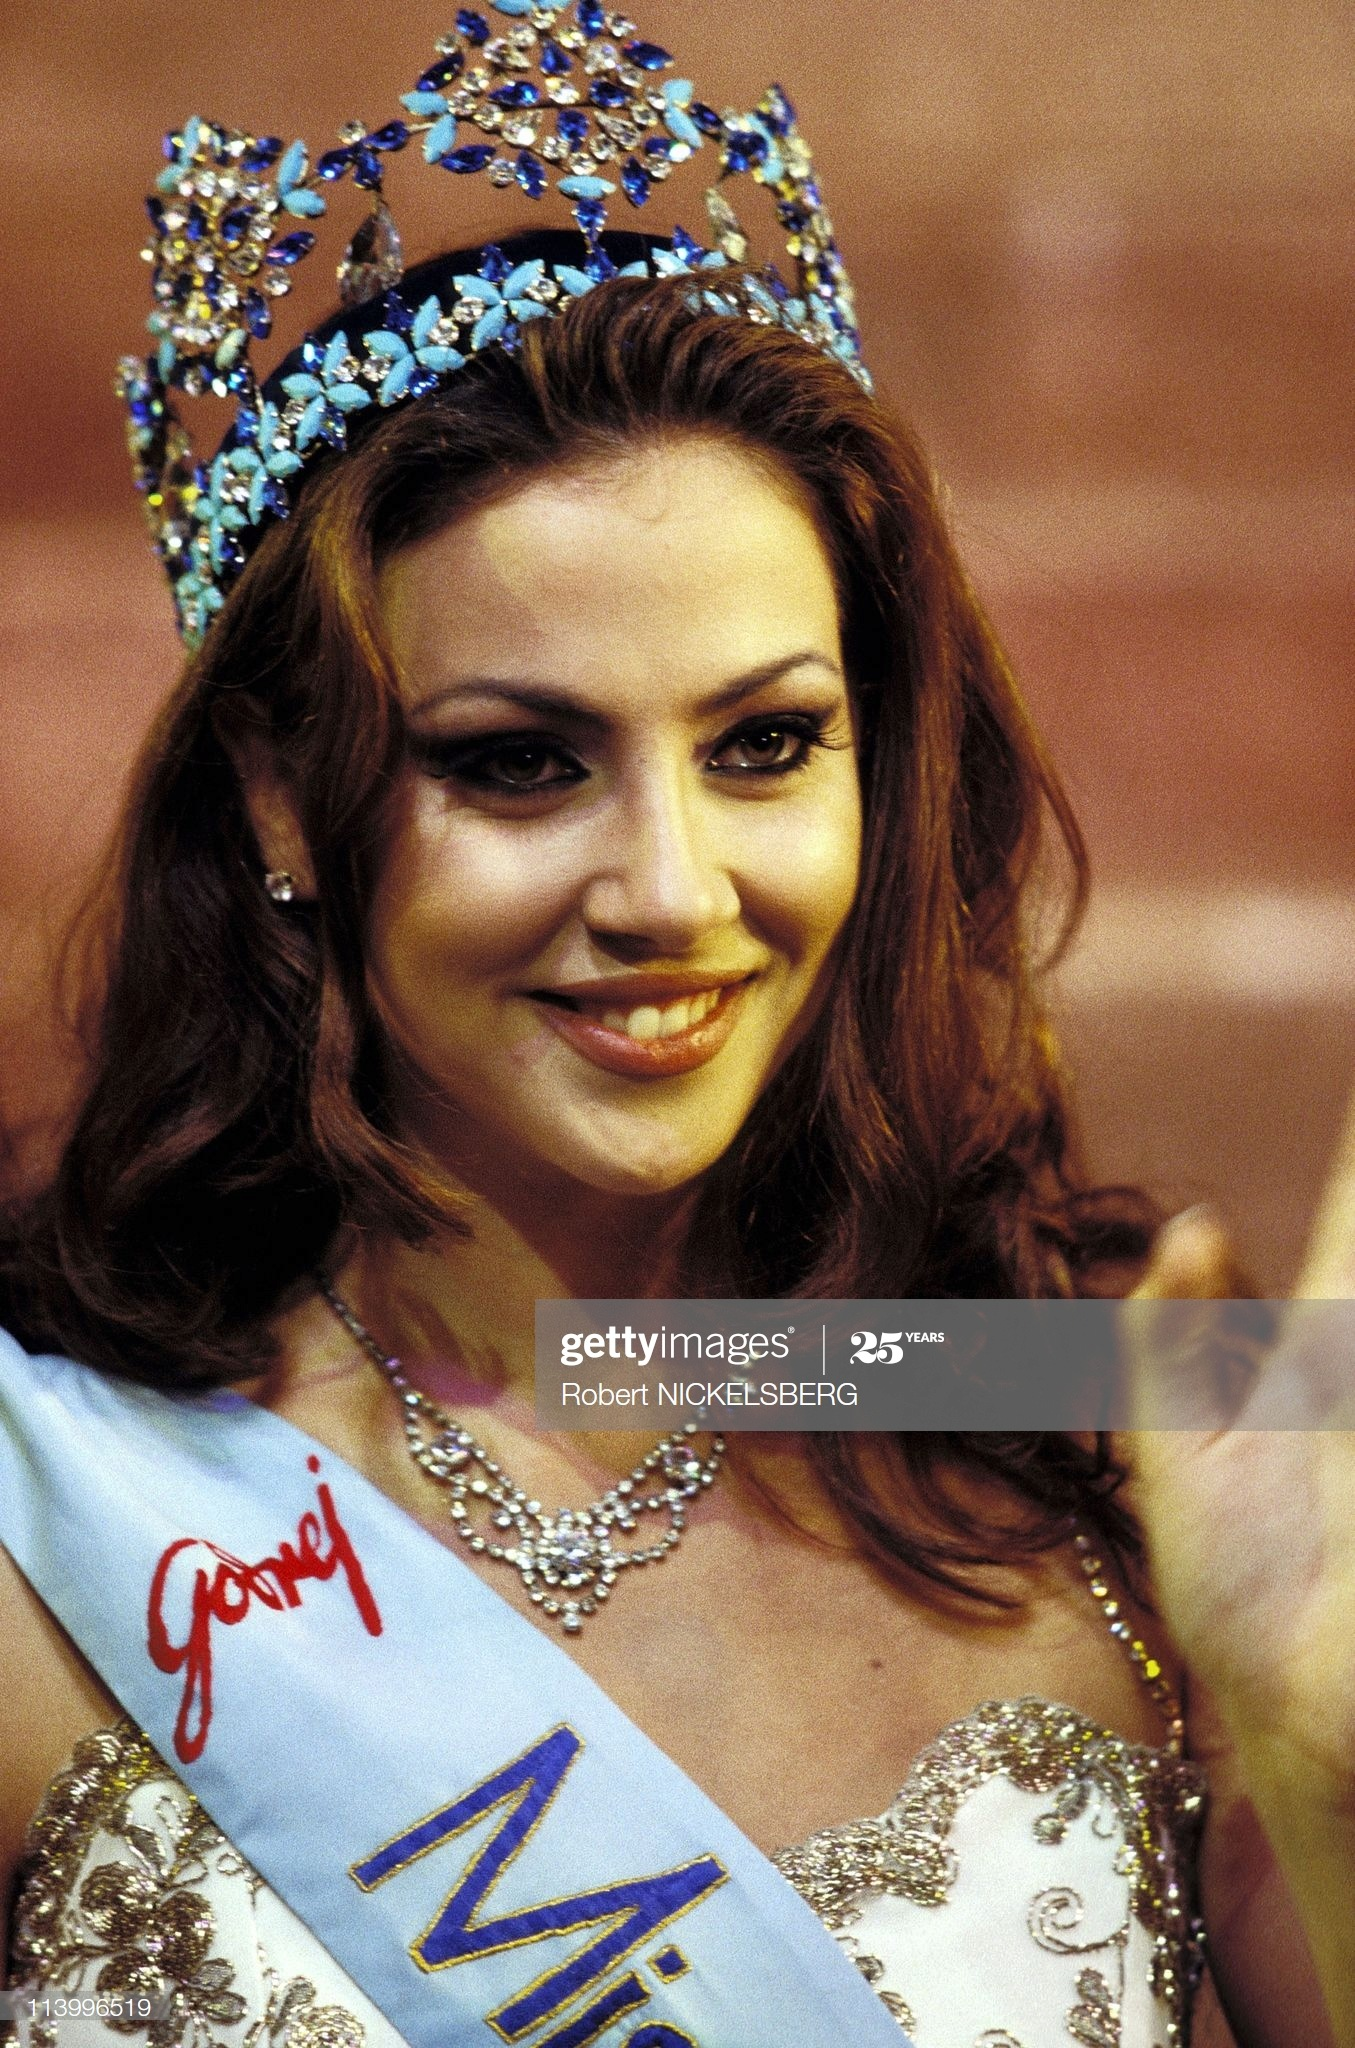 irene skliva, miss world 1996. Irene-11